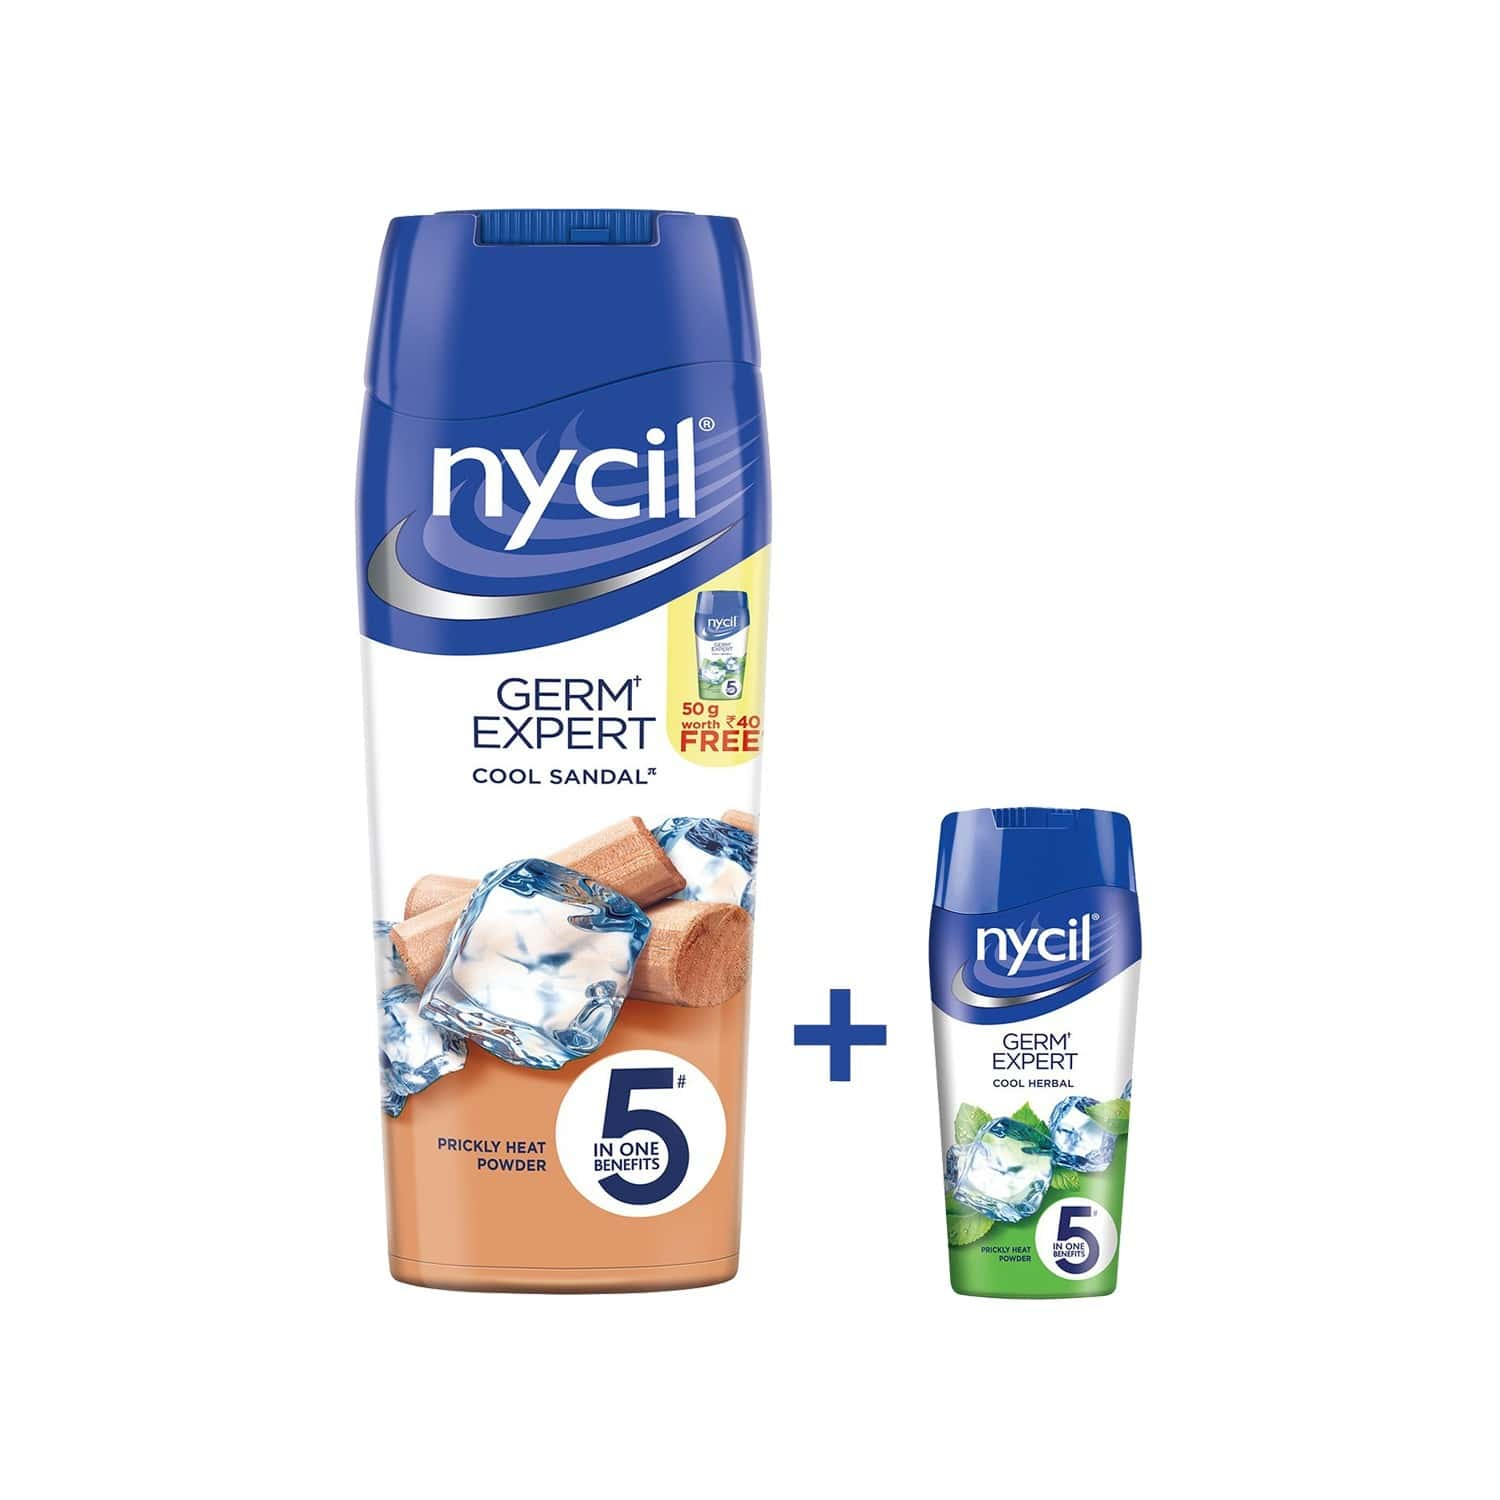 Nycil Cool Chandan Prickly Heat Powder  Bottle Of 150 G (cool Herbal 50g Free)